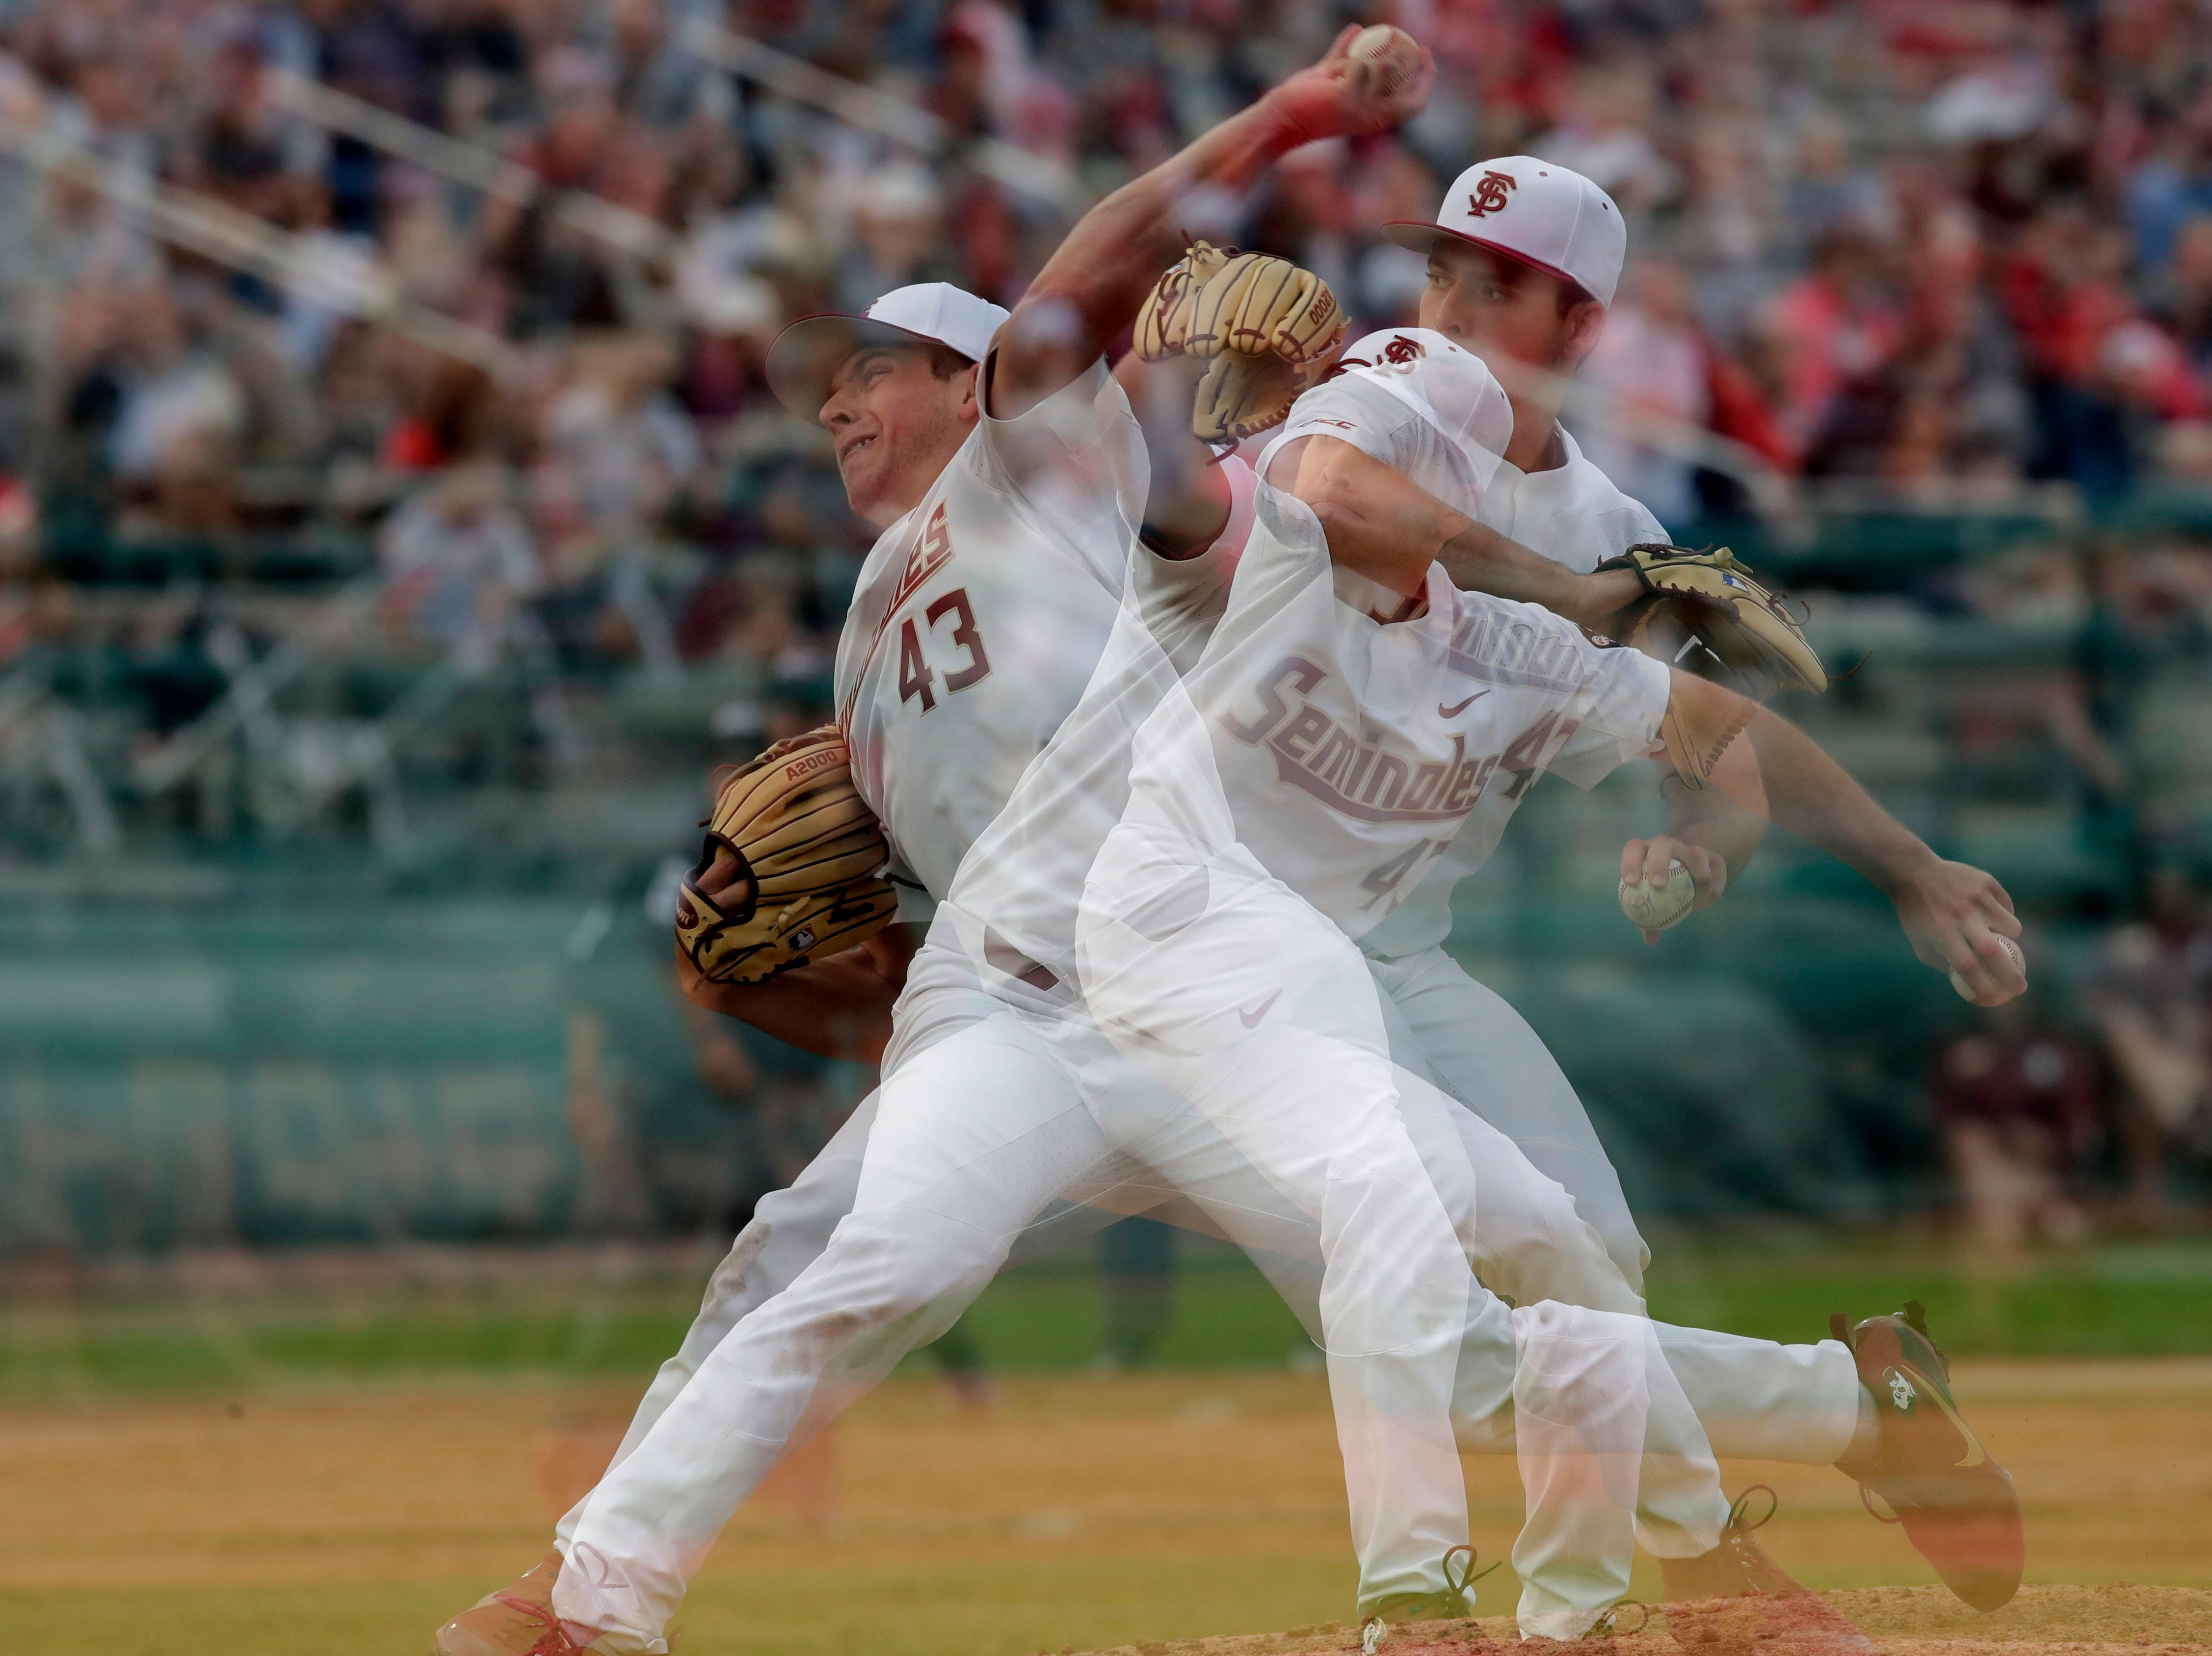 A multiple exposure of Florida State Seminoles left handed pitcher/Outfielder Drew Parrish (43) pitching as the Florida State Seminoles host the Maine Black Bears in the 2019 season opener game, Friday Feb. 15, 2019.